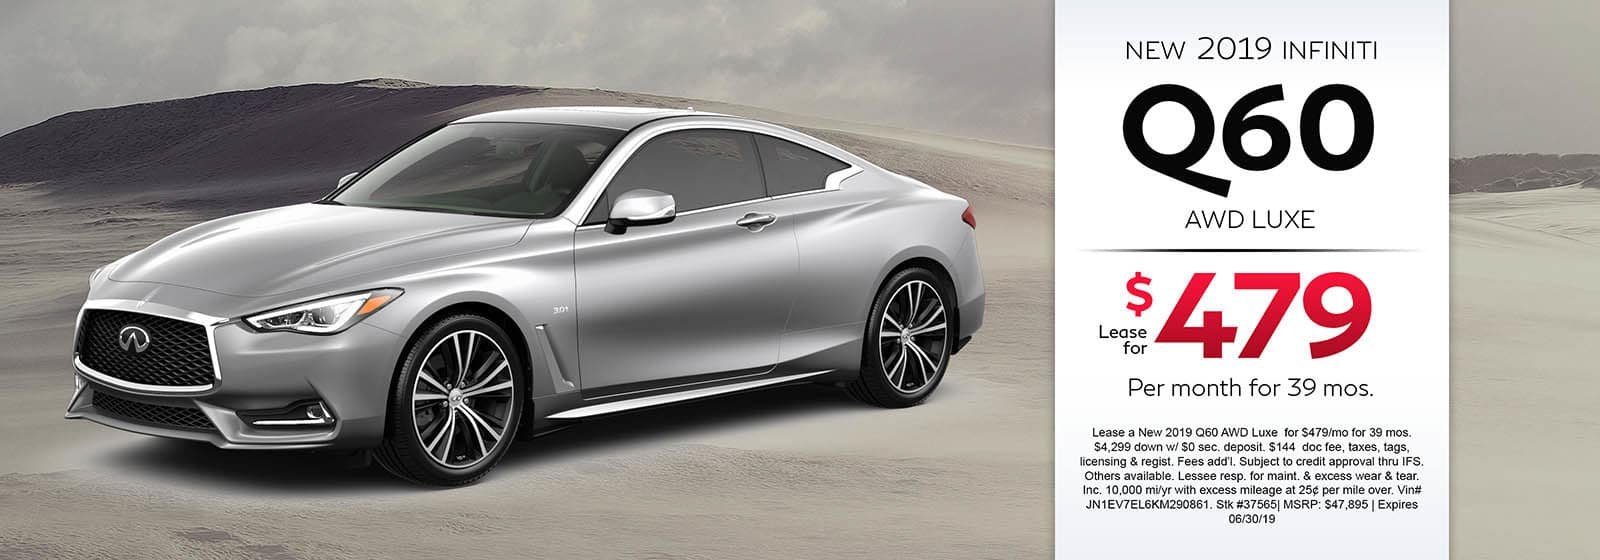 2019 INFINITI Q60 AWD LUXE Lease For $479